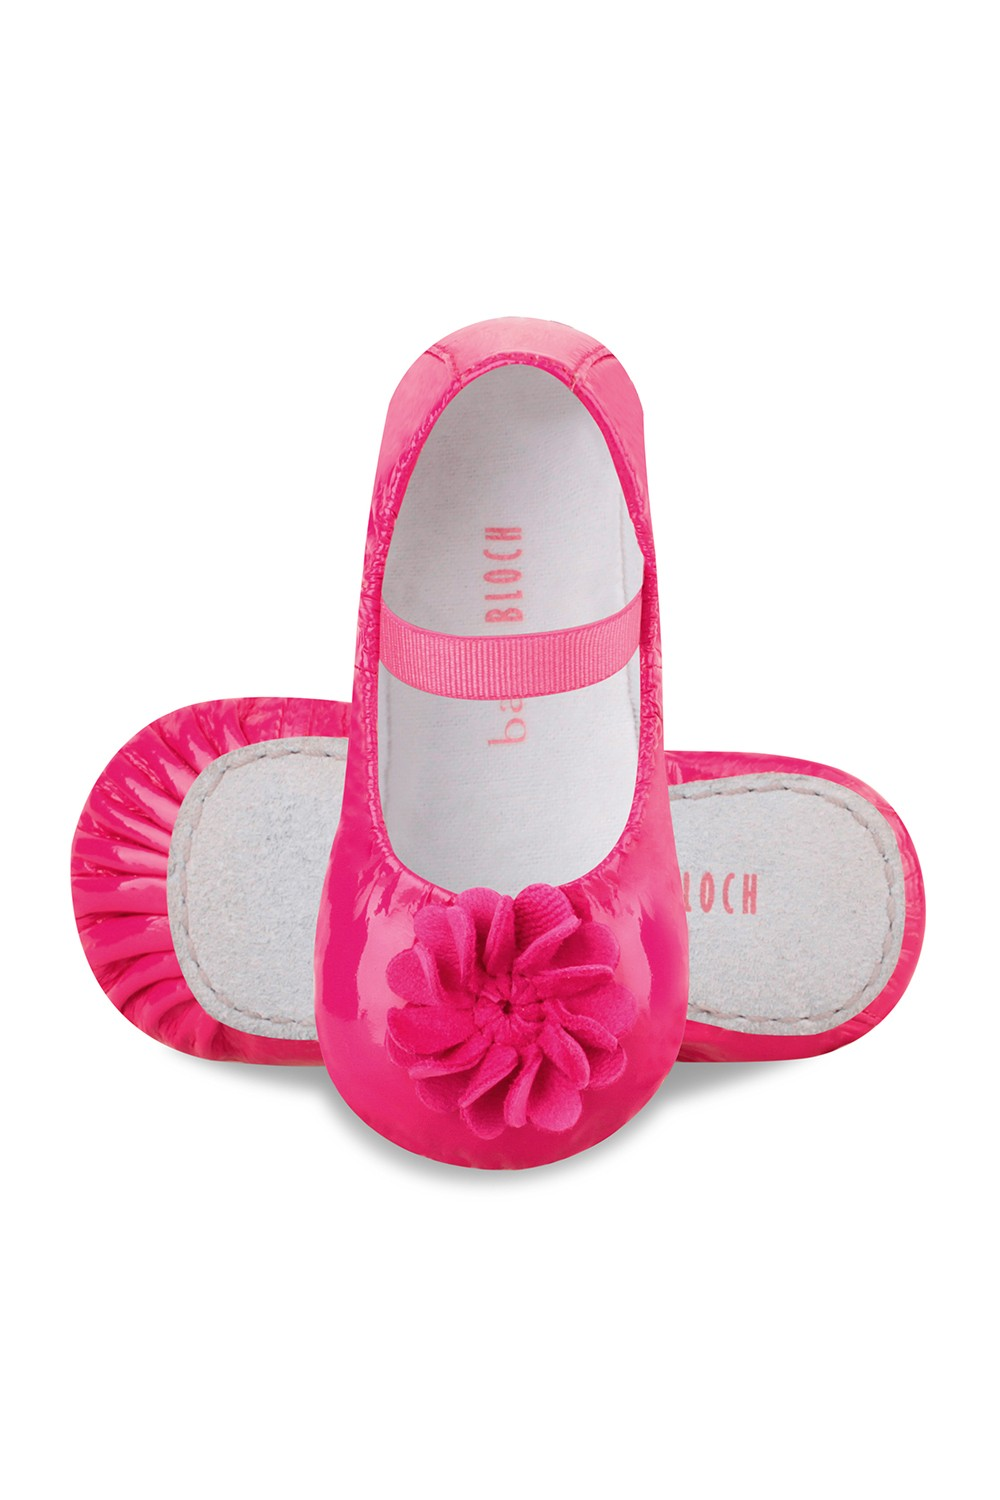 Florrie - Baby Babies Fashion Shoes